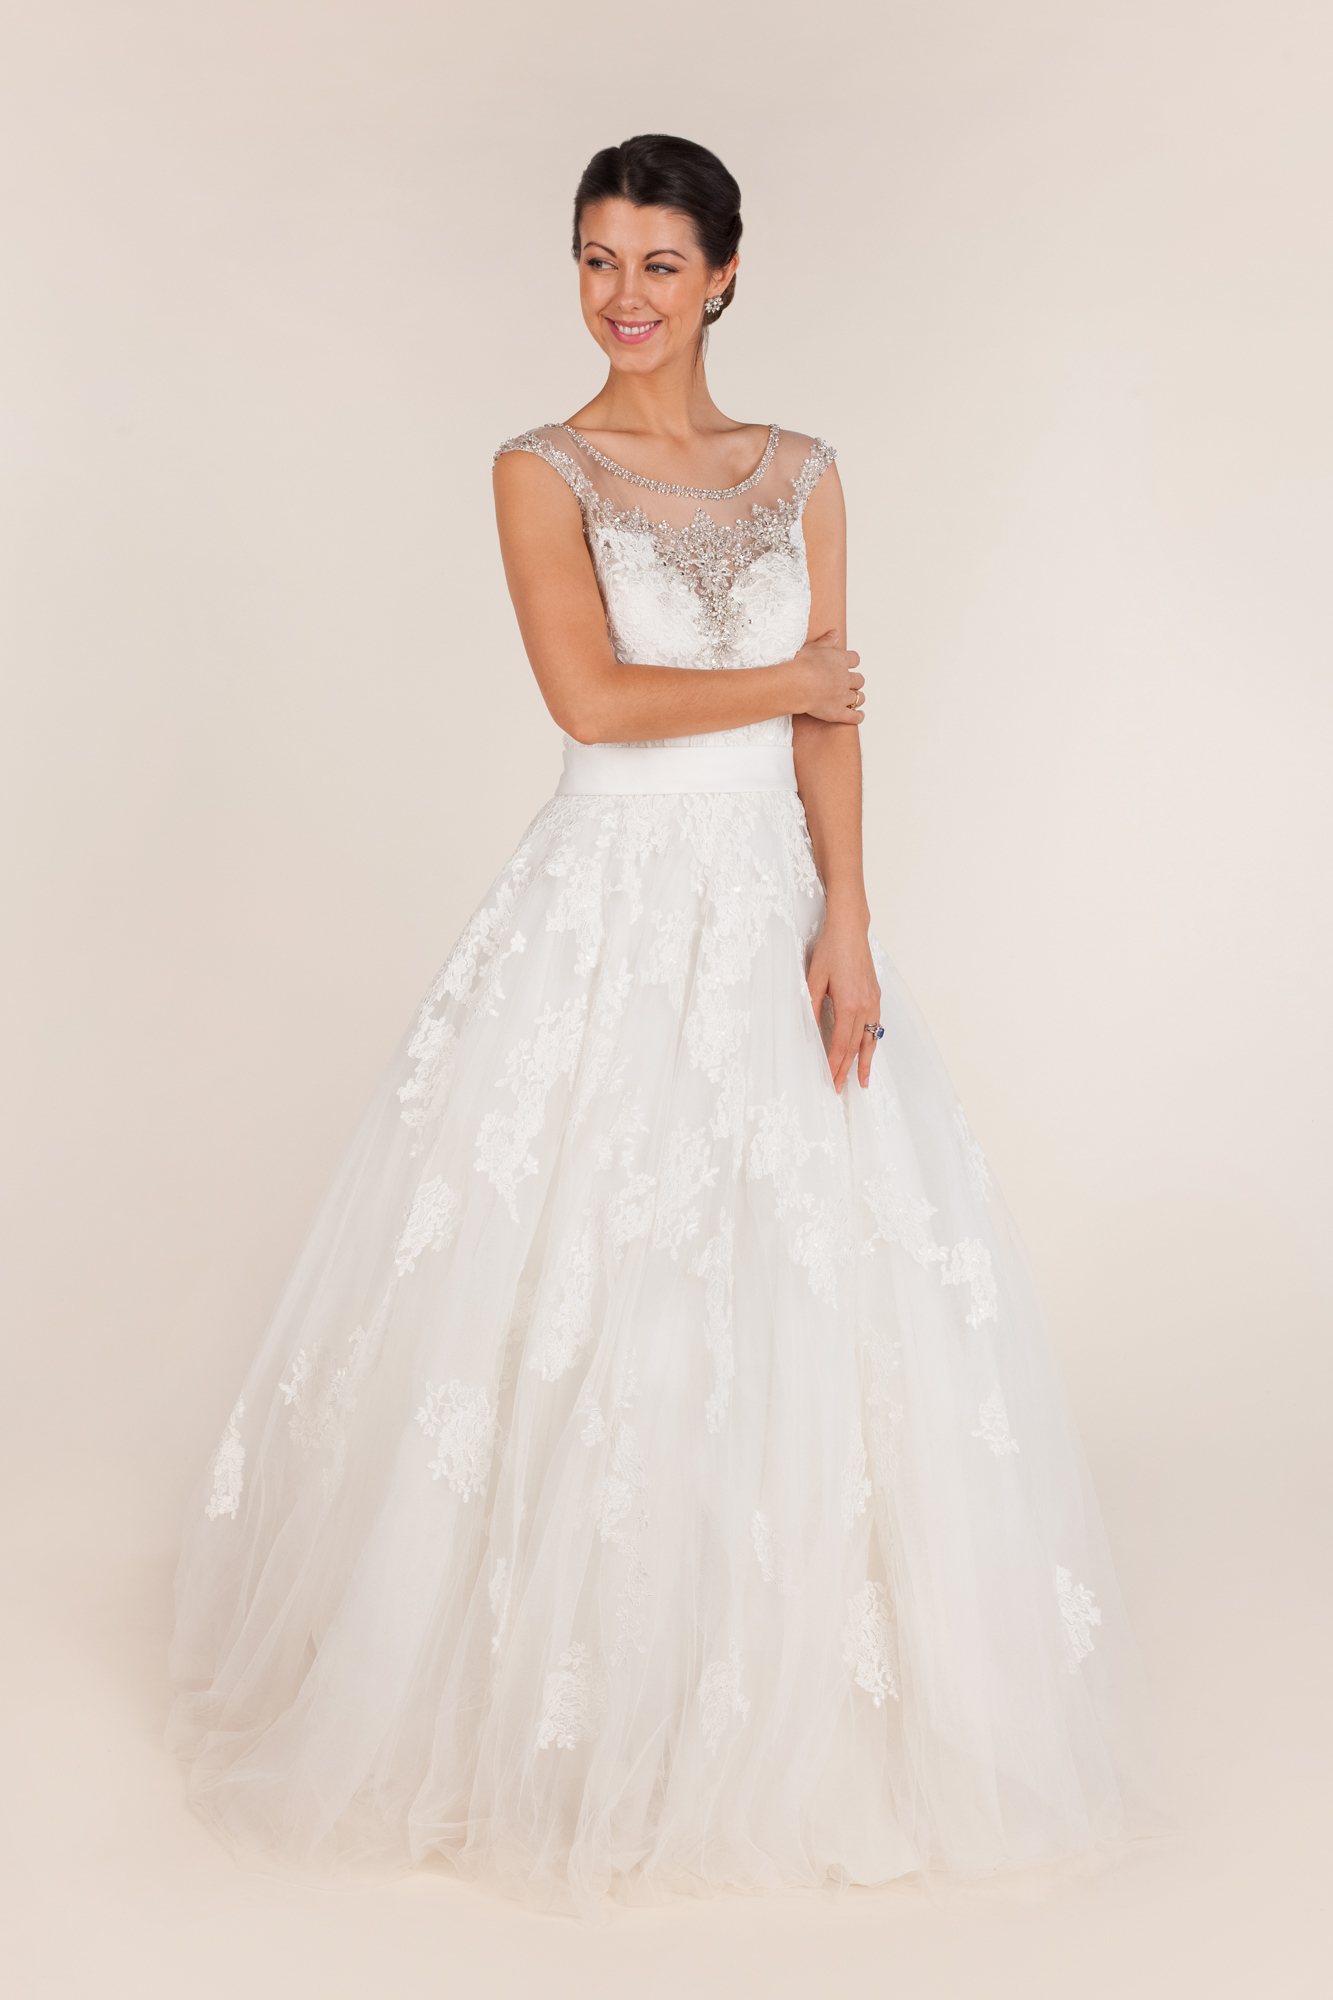 Allure bridals - 9114 size 0 - $650 - (59% OFF)